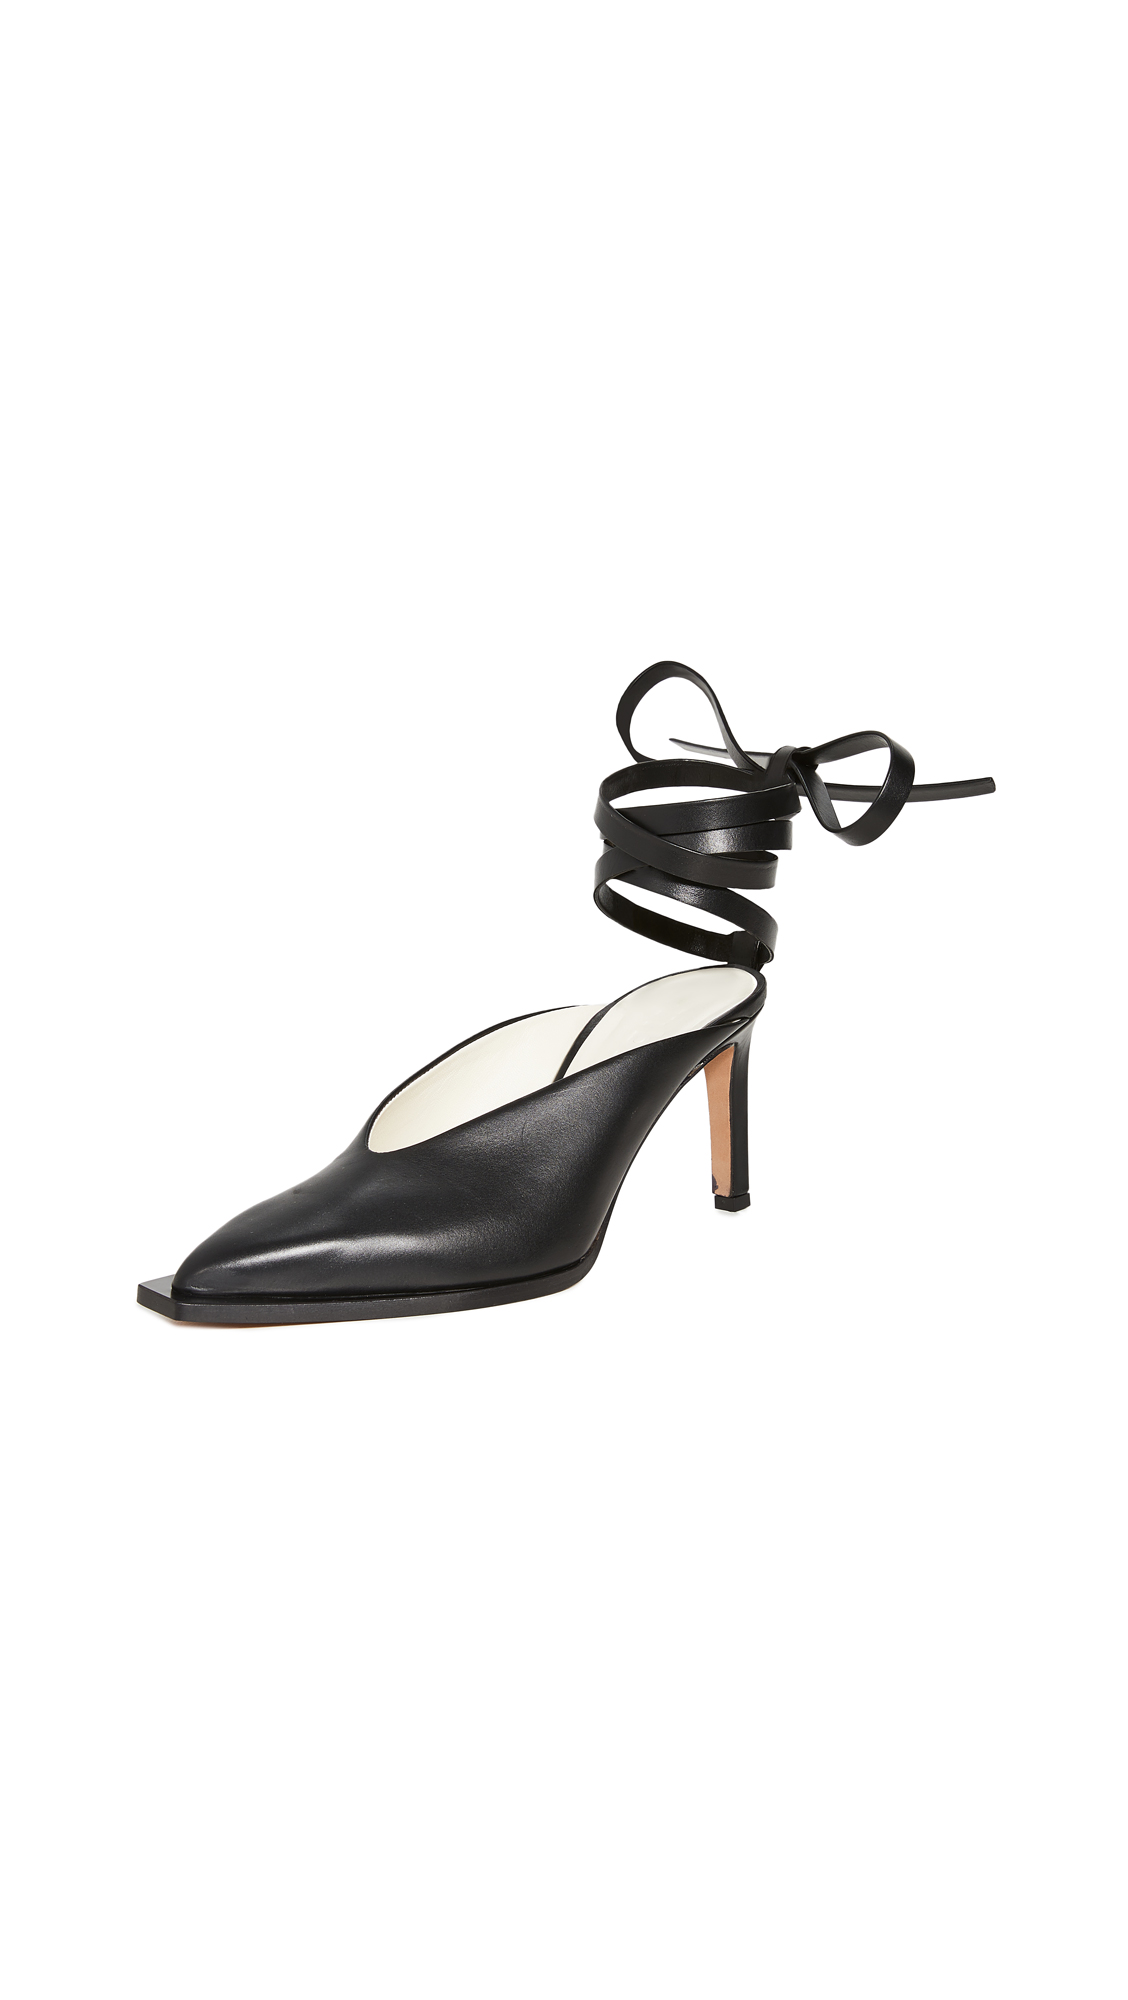 Tibi Neima Pumps – 60% Off Sale